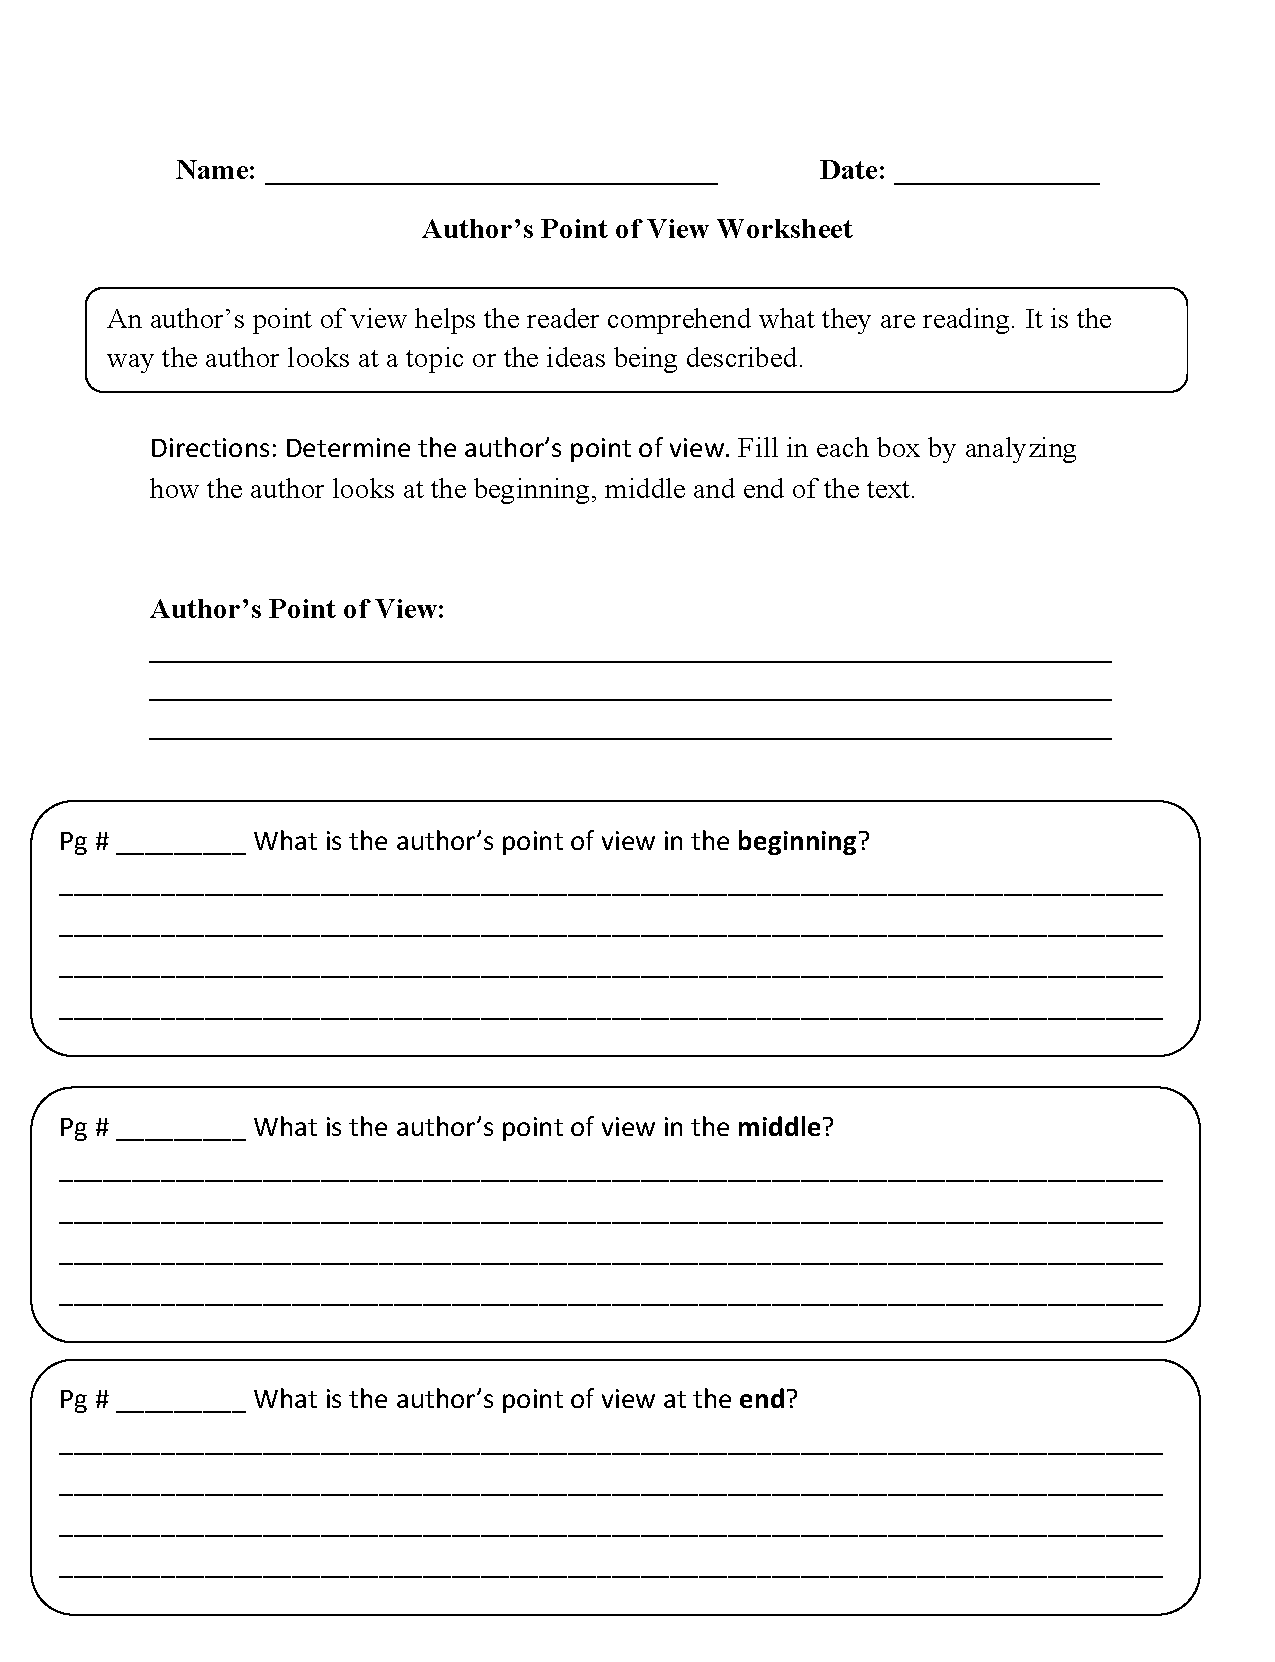 Worksheets Point Of View Worksheets 3rd Grade englishlinx com point of view worksheets worksheets